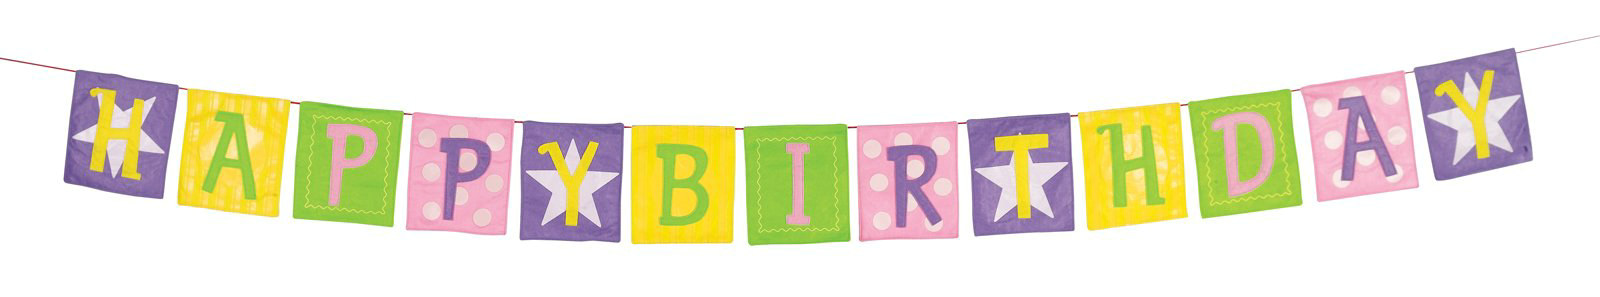 Appliqued Birthday Banner - Pastel Colored